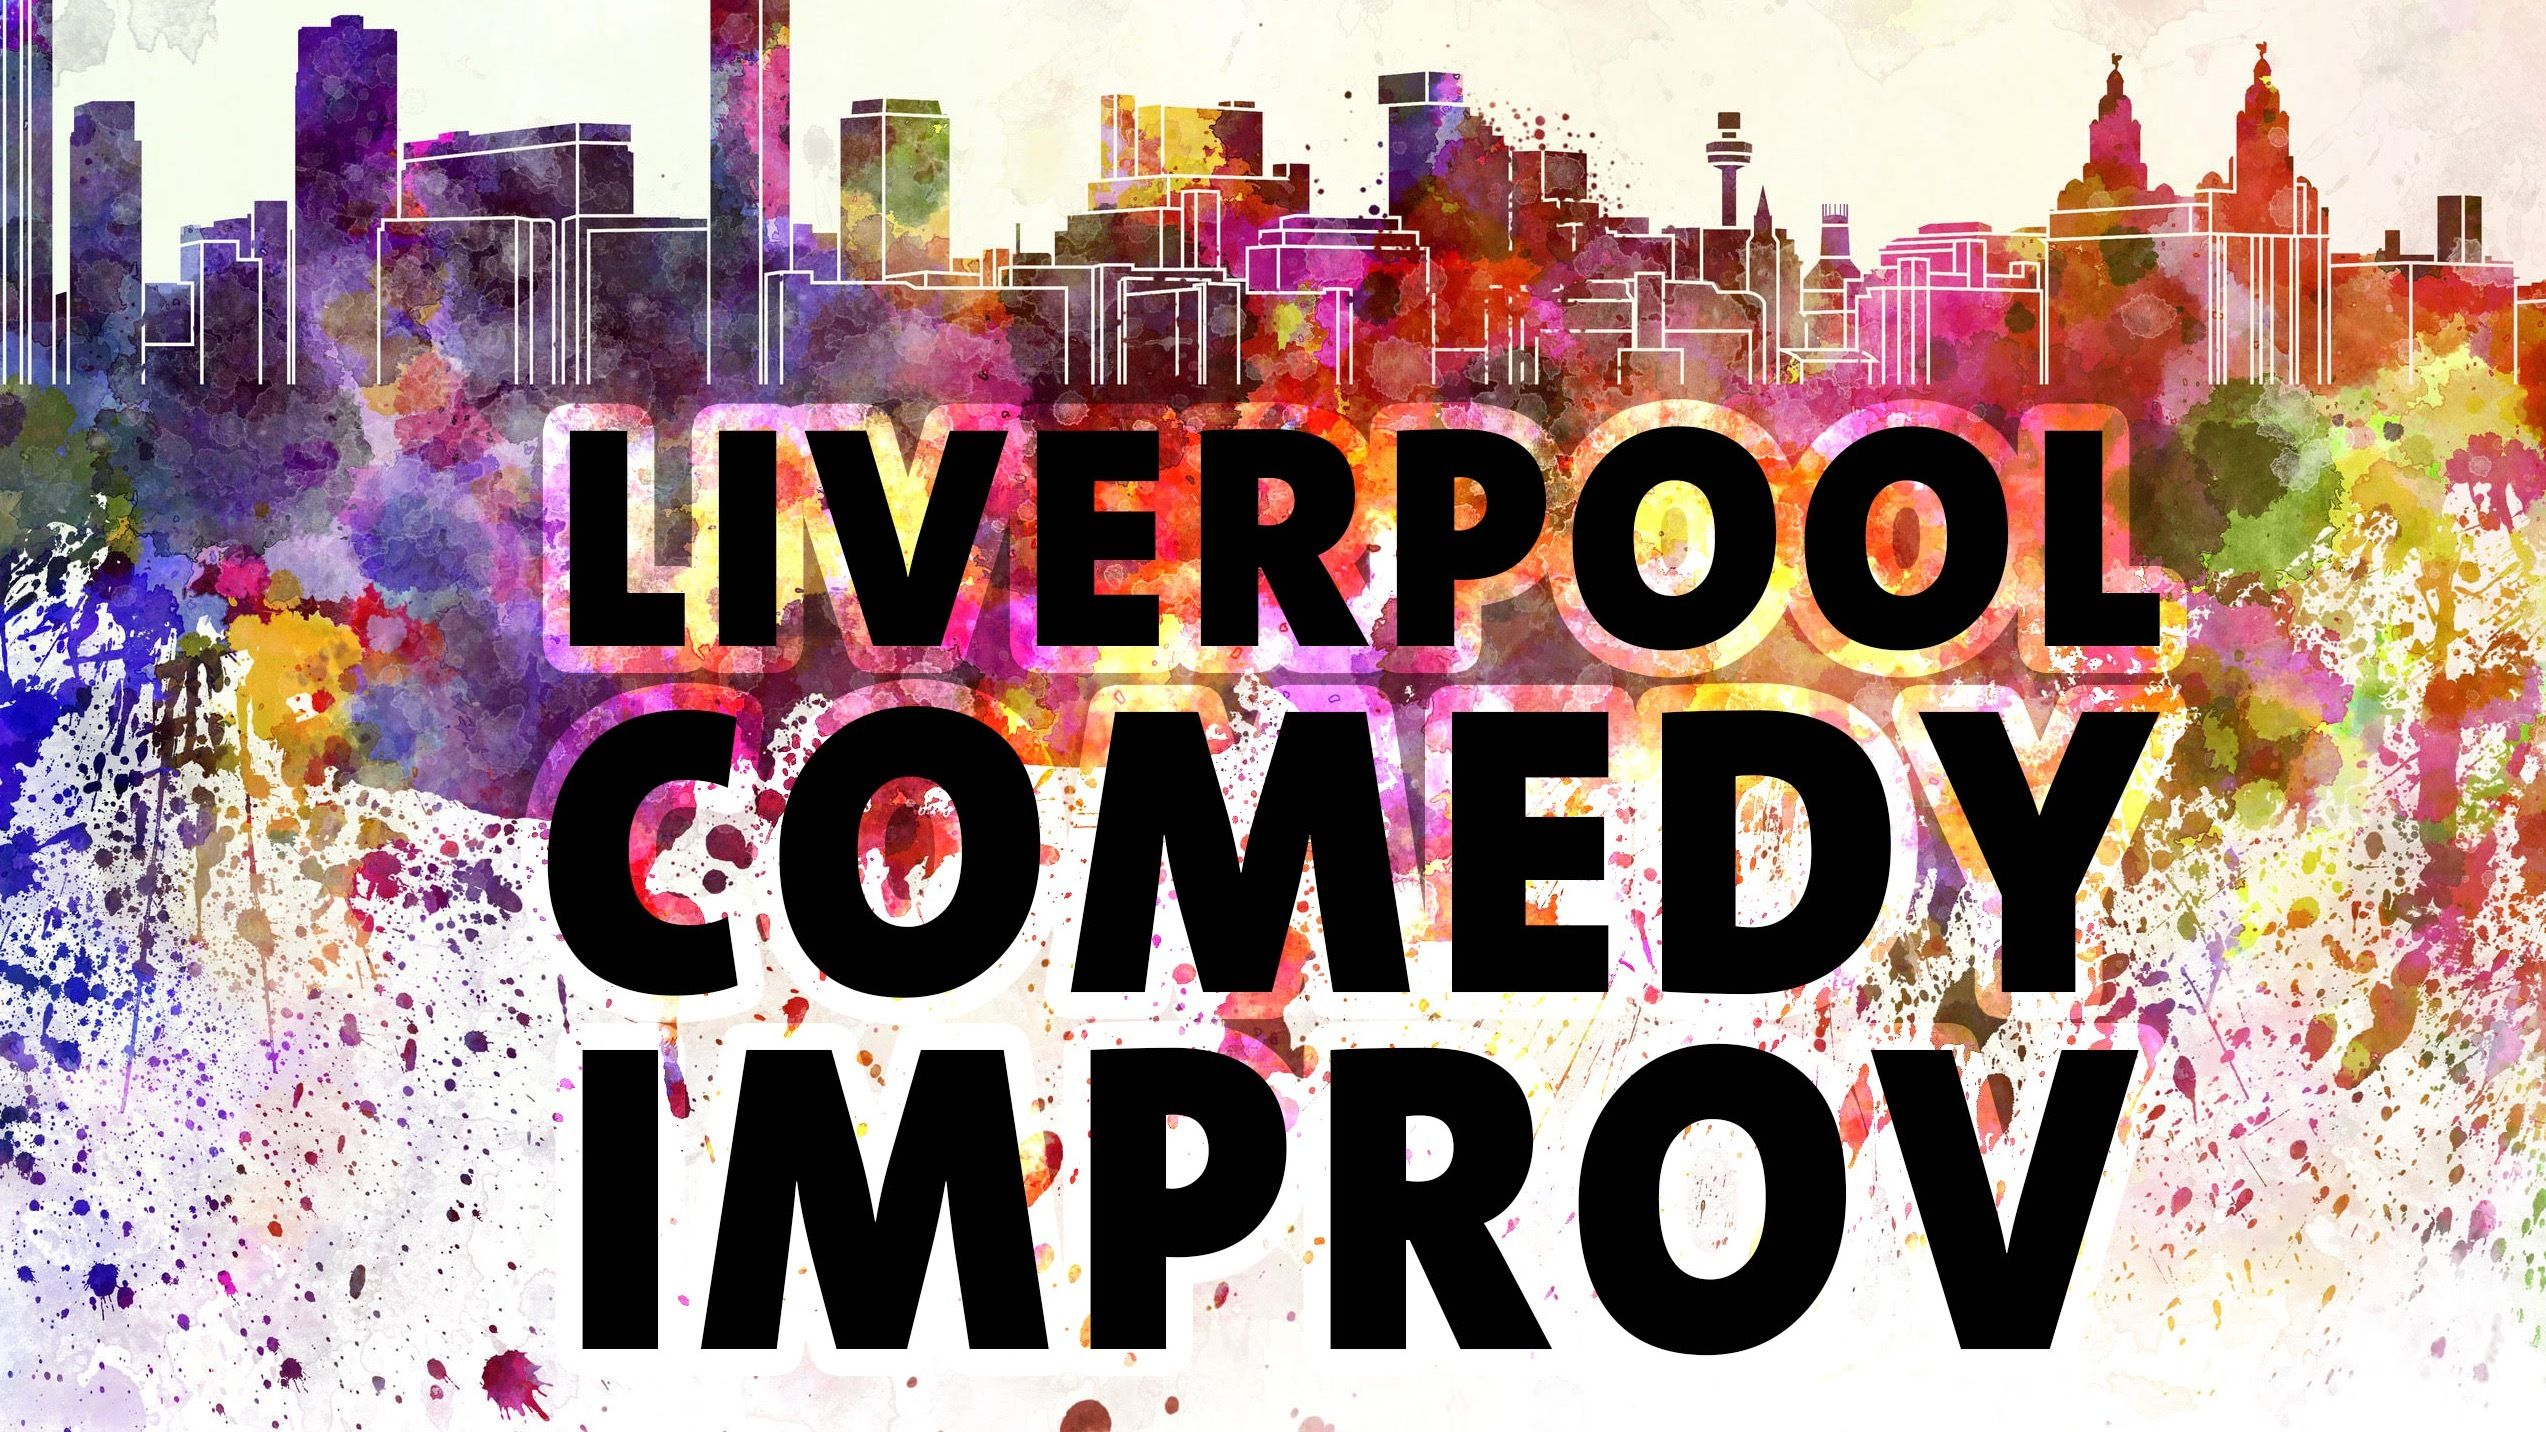 Liverpool Comedy Improv! Fun weekly workshop for any level